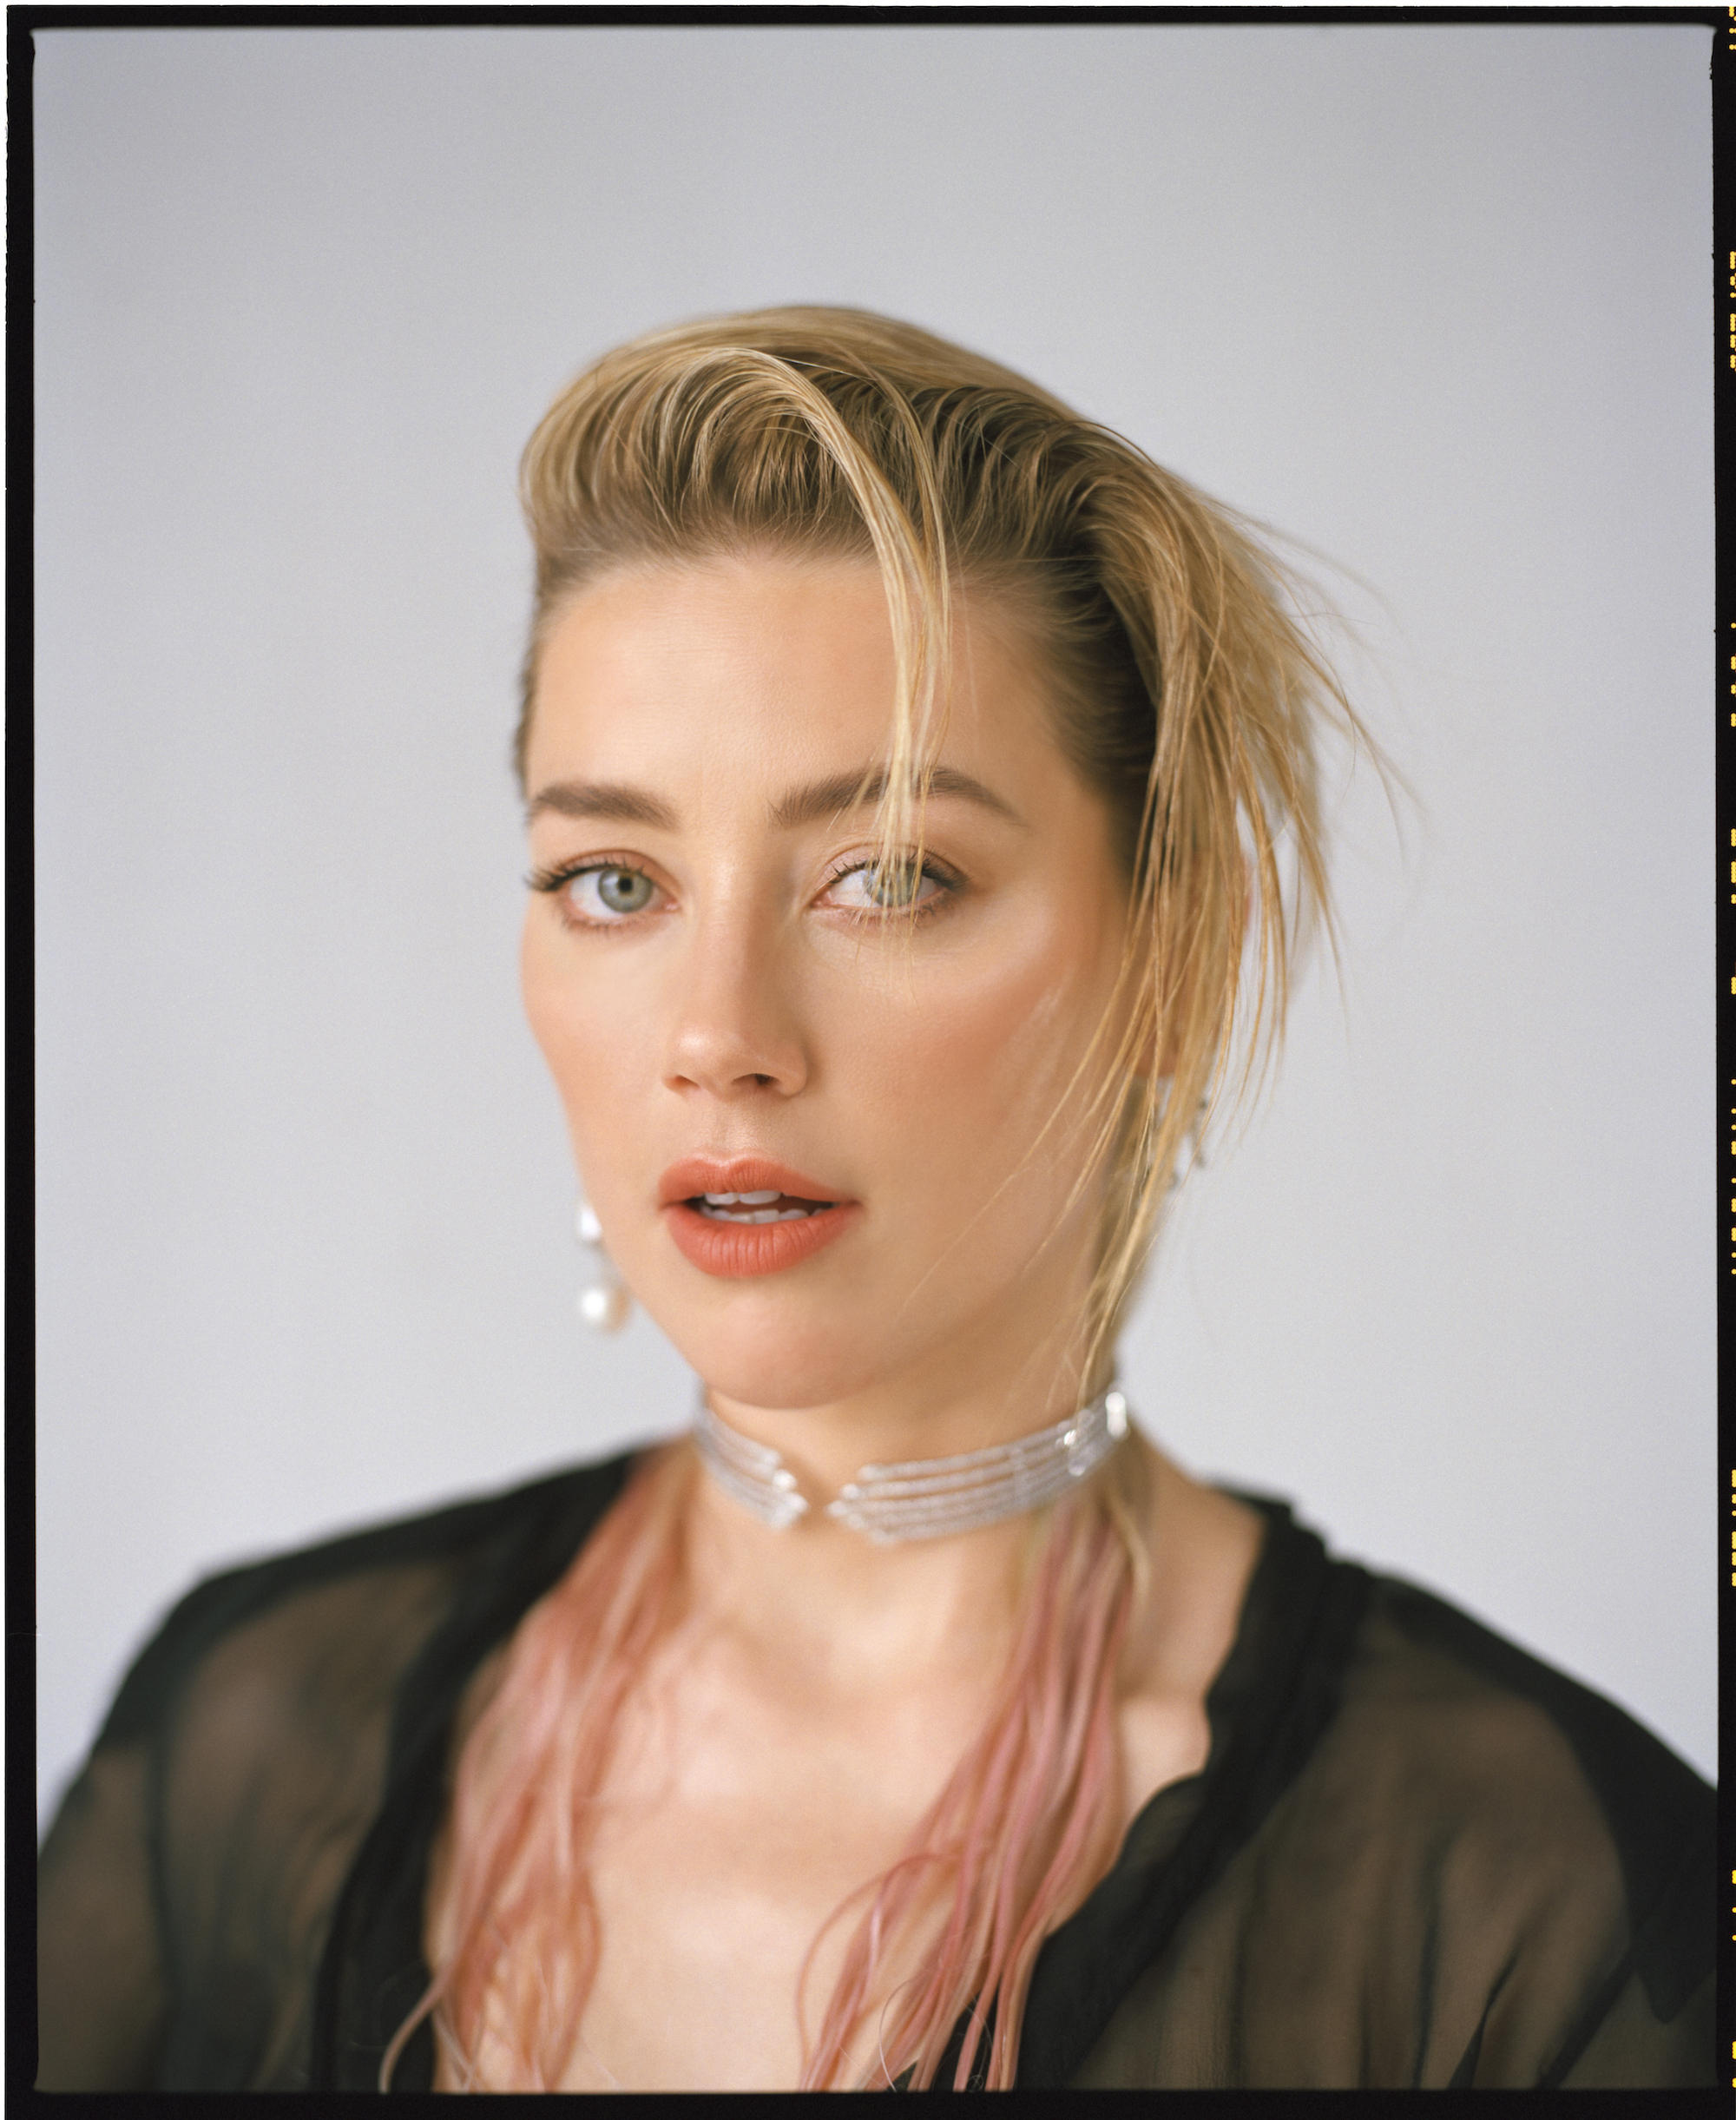 Actress Amber Heard on the cover of Spring 19 issue of Wonderland black top